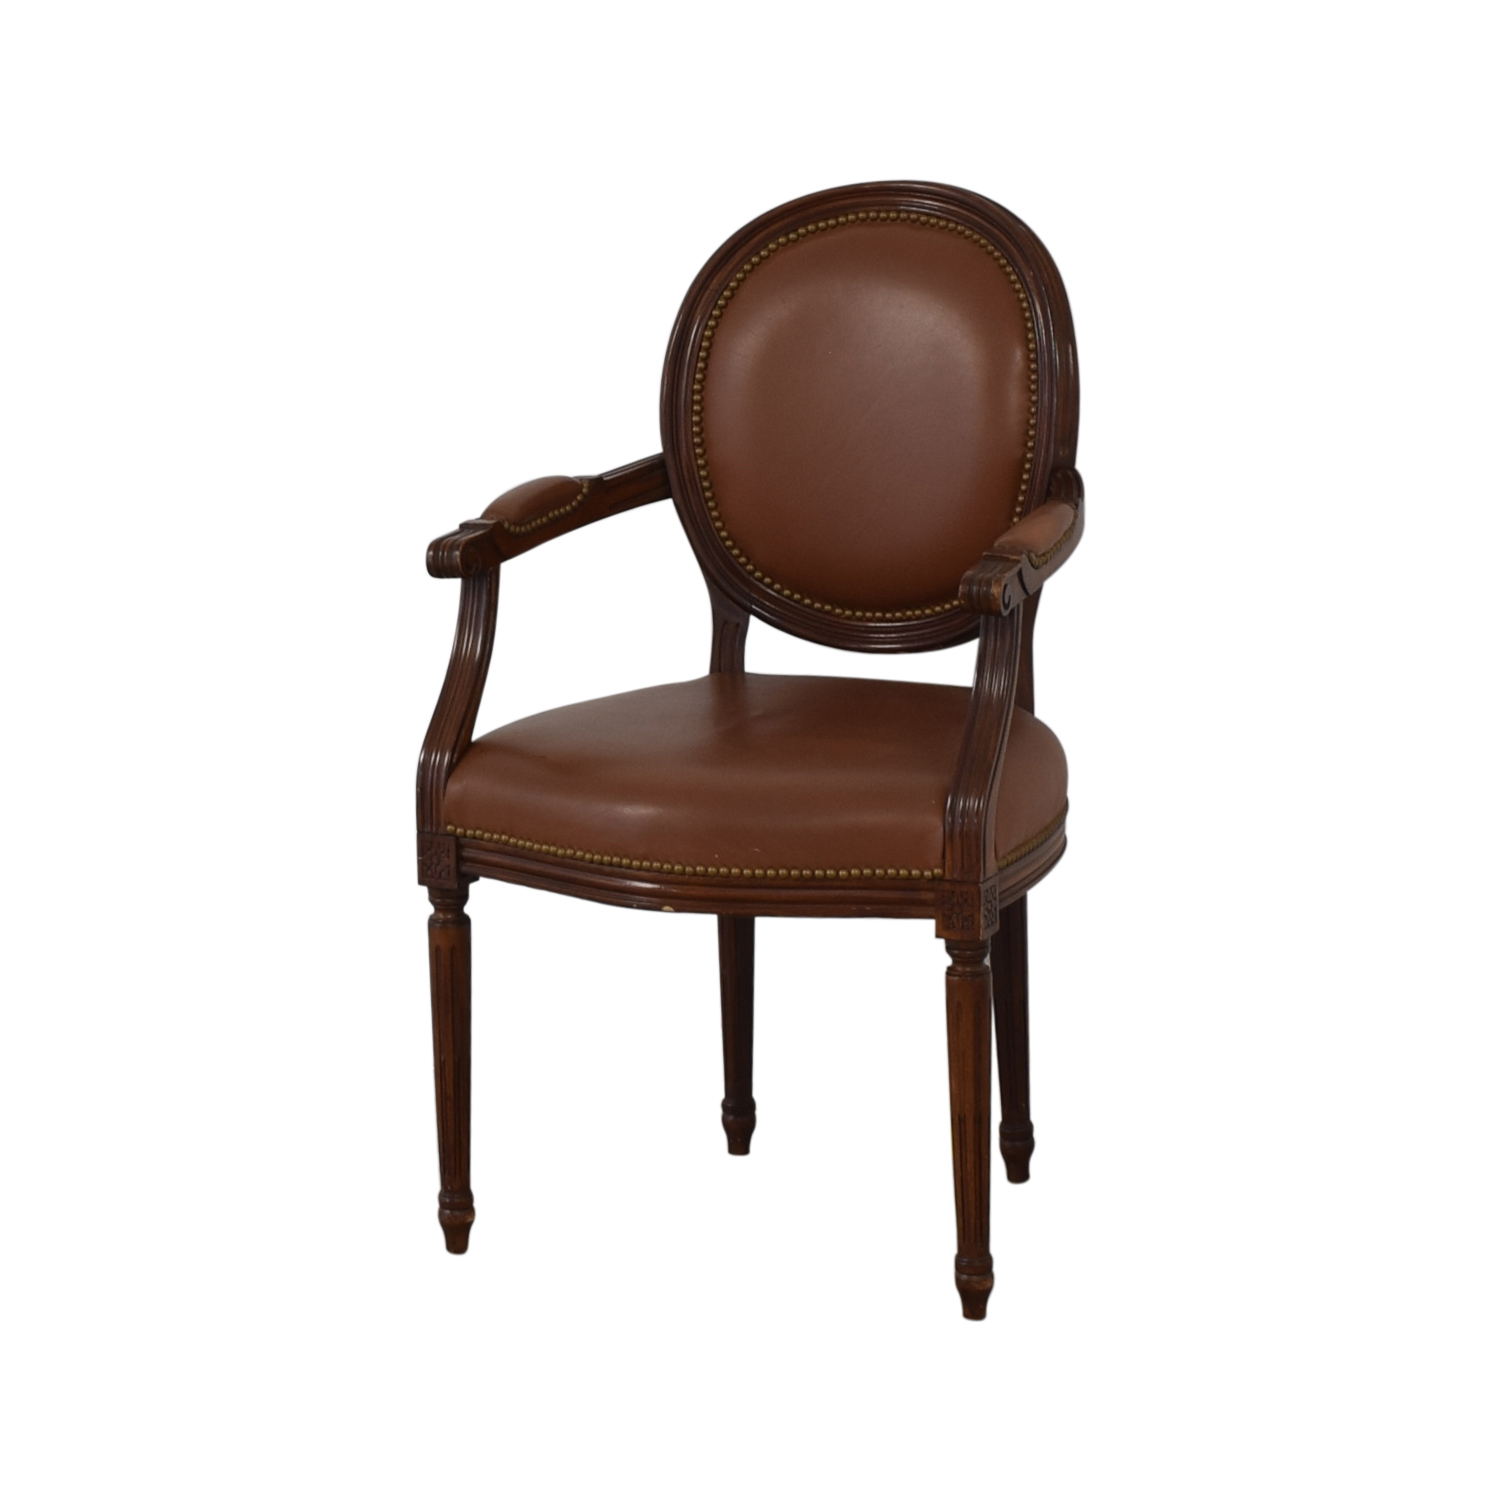 Leather Arm Chair second hand